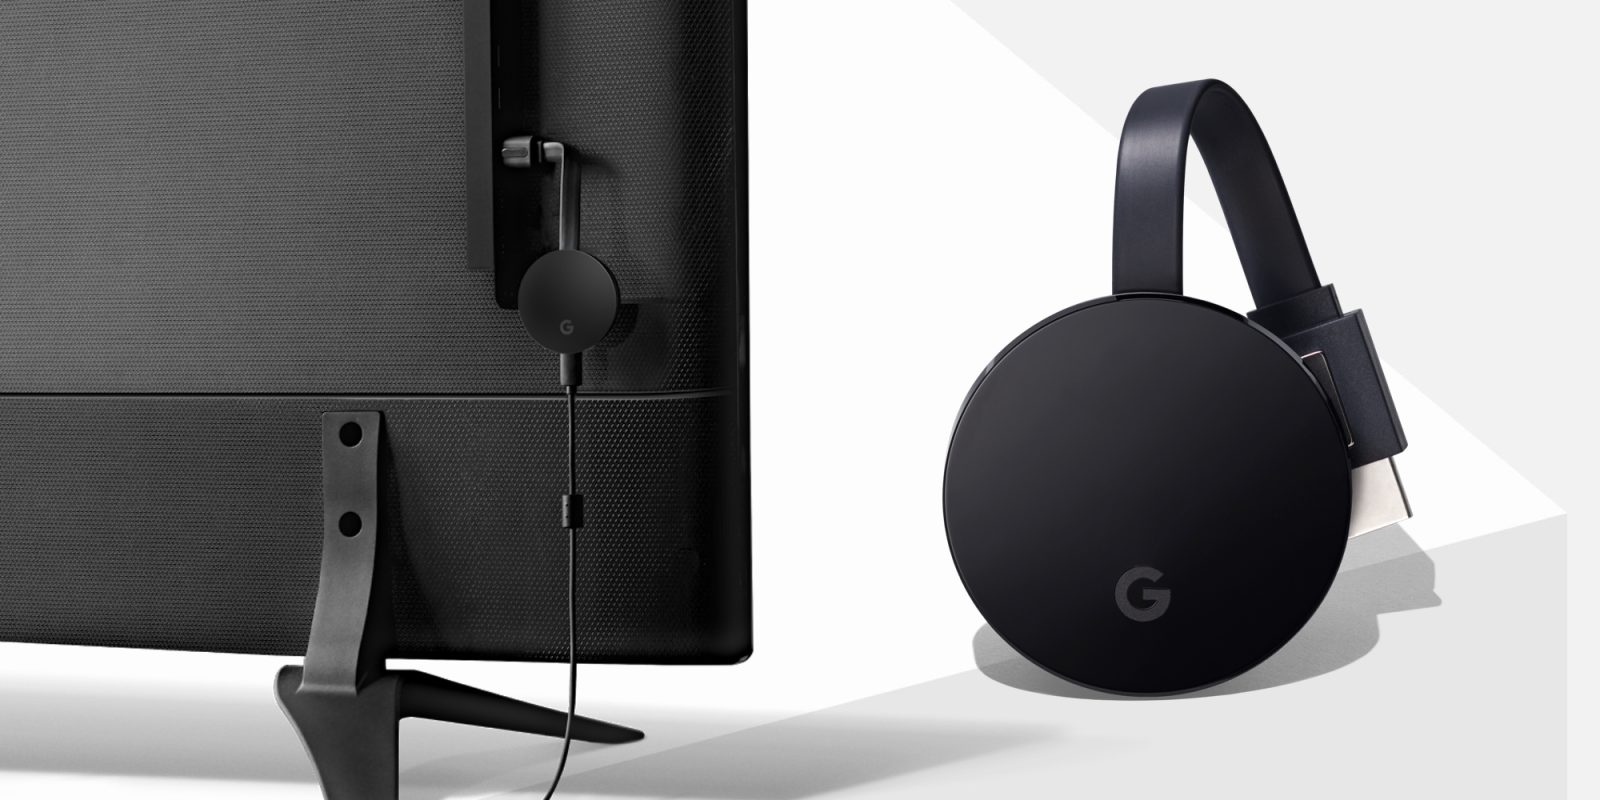 Google Chromecast upgrades your TV for $28 shipped (Save 20%) - 9to5Toys